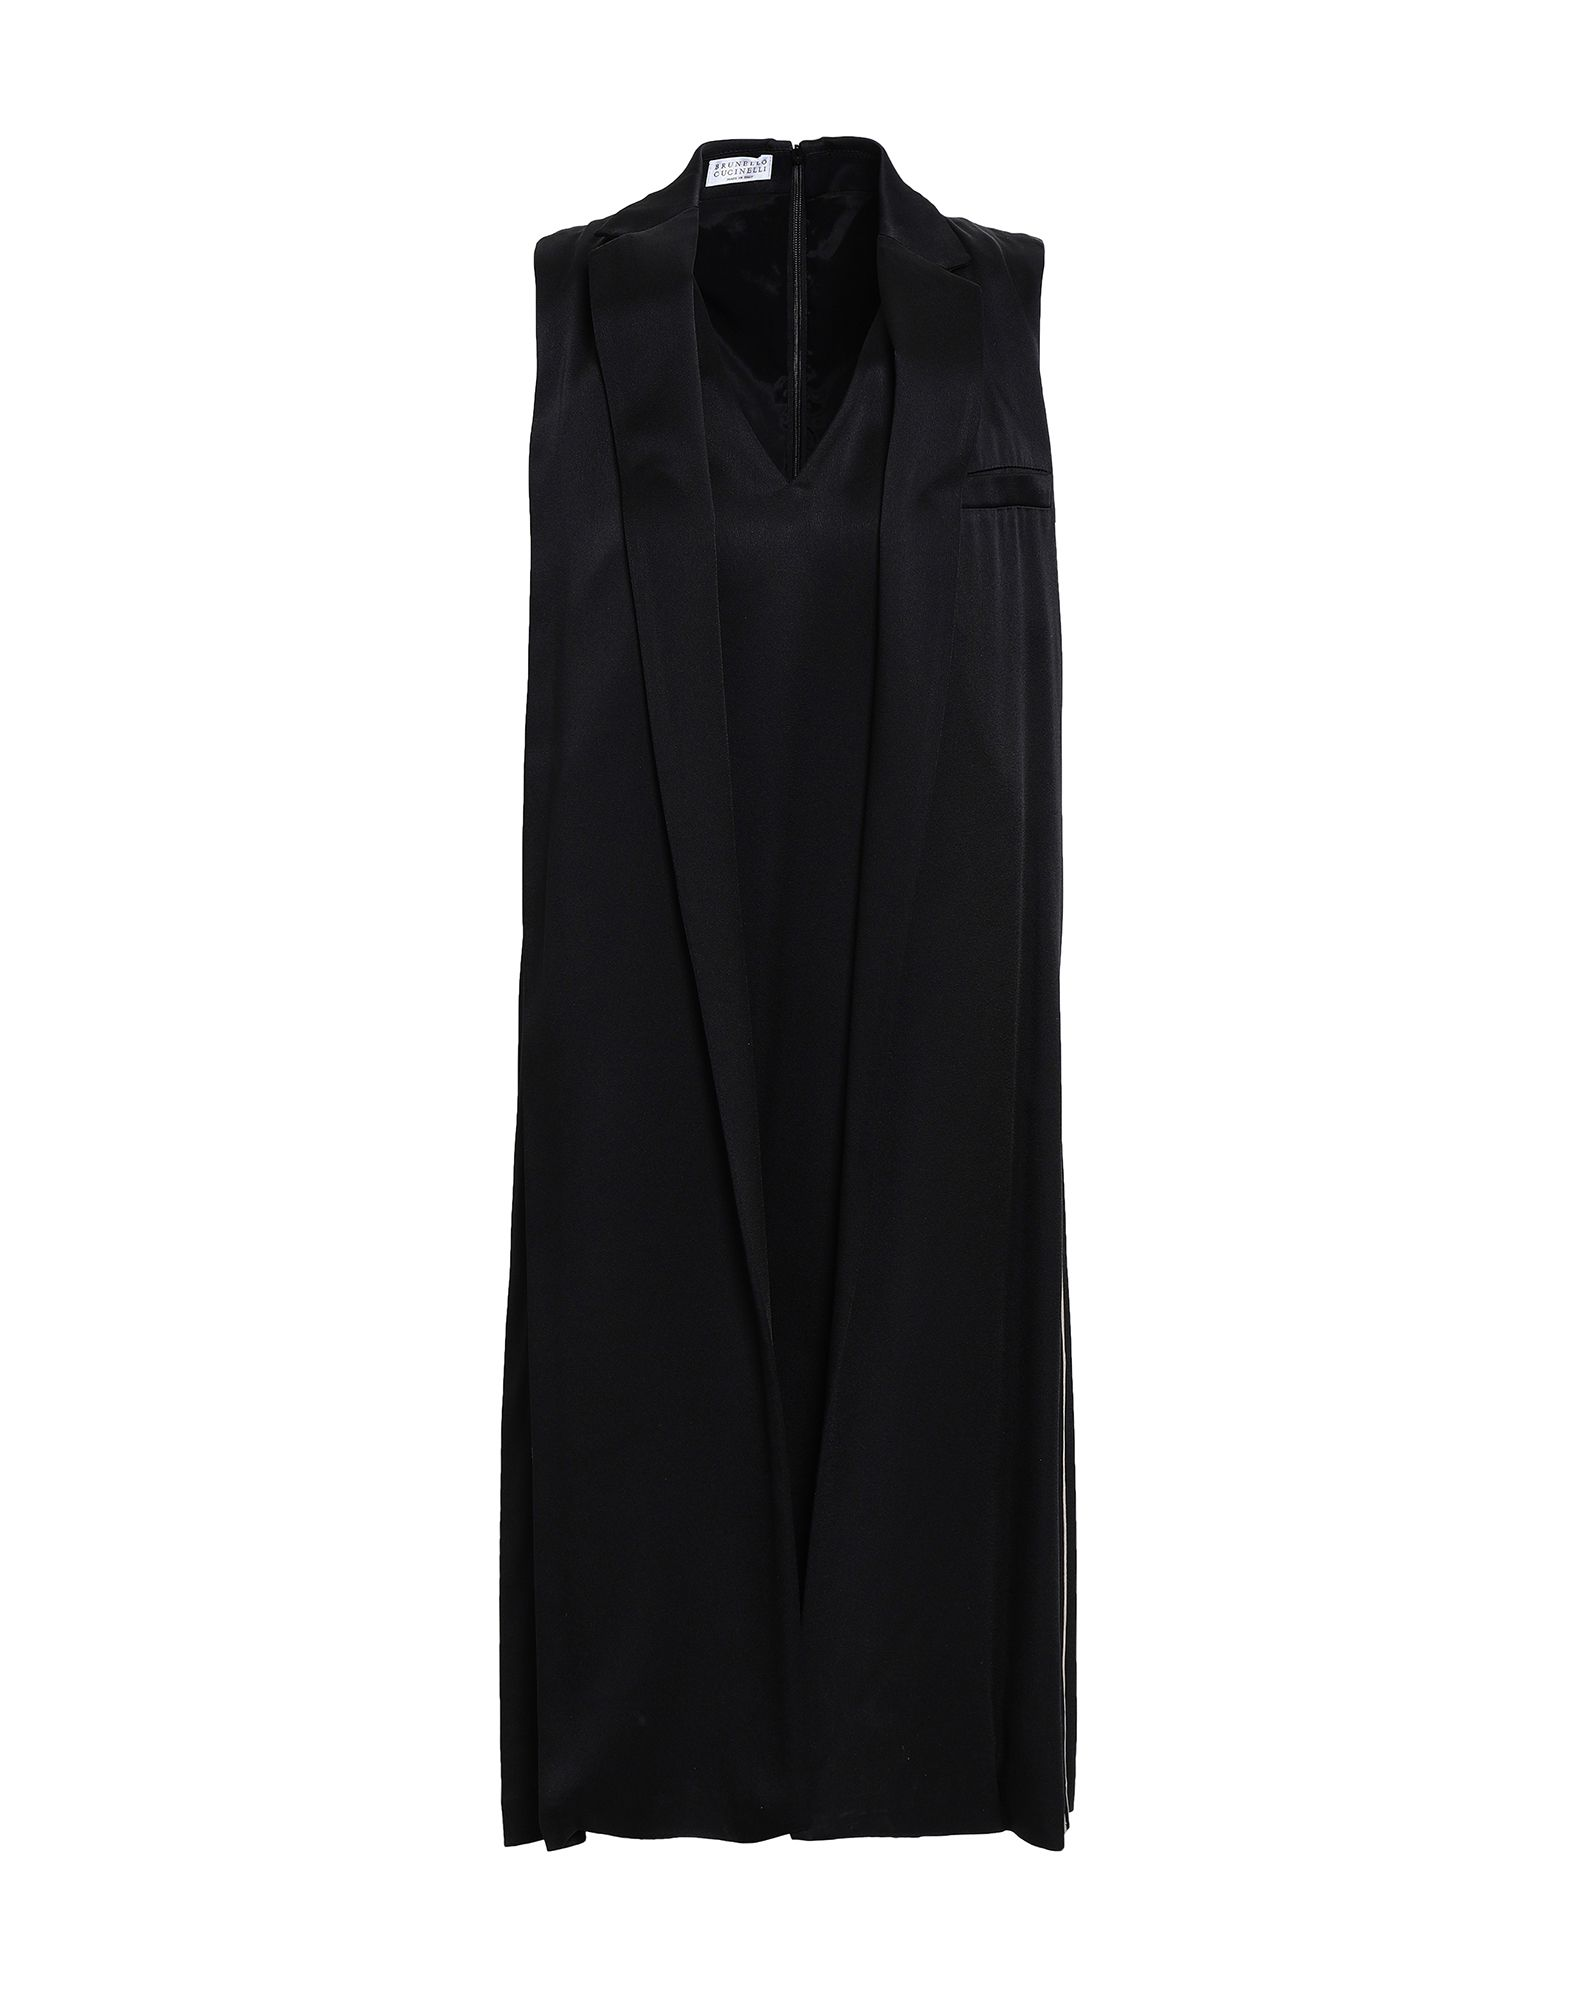 BRUNELLO CUCINELLI Knee-length dresses. satin, no appliqués, v-neck, sleeveless, solid color, multipockets, rear closure, zip, fully lined, trapeze style. 54% Viscose, 46% Acetate